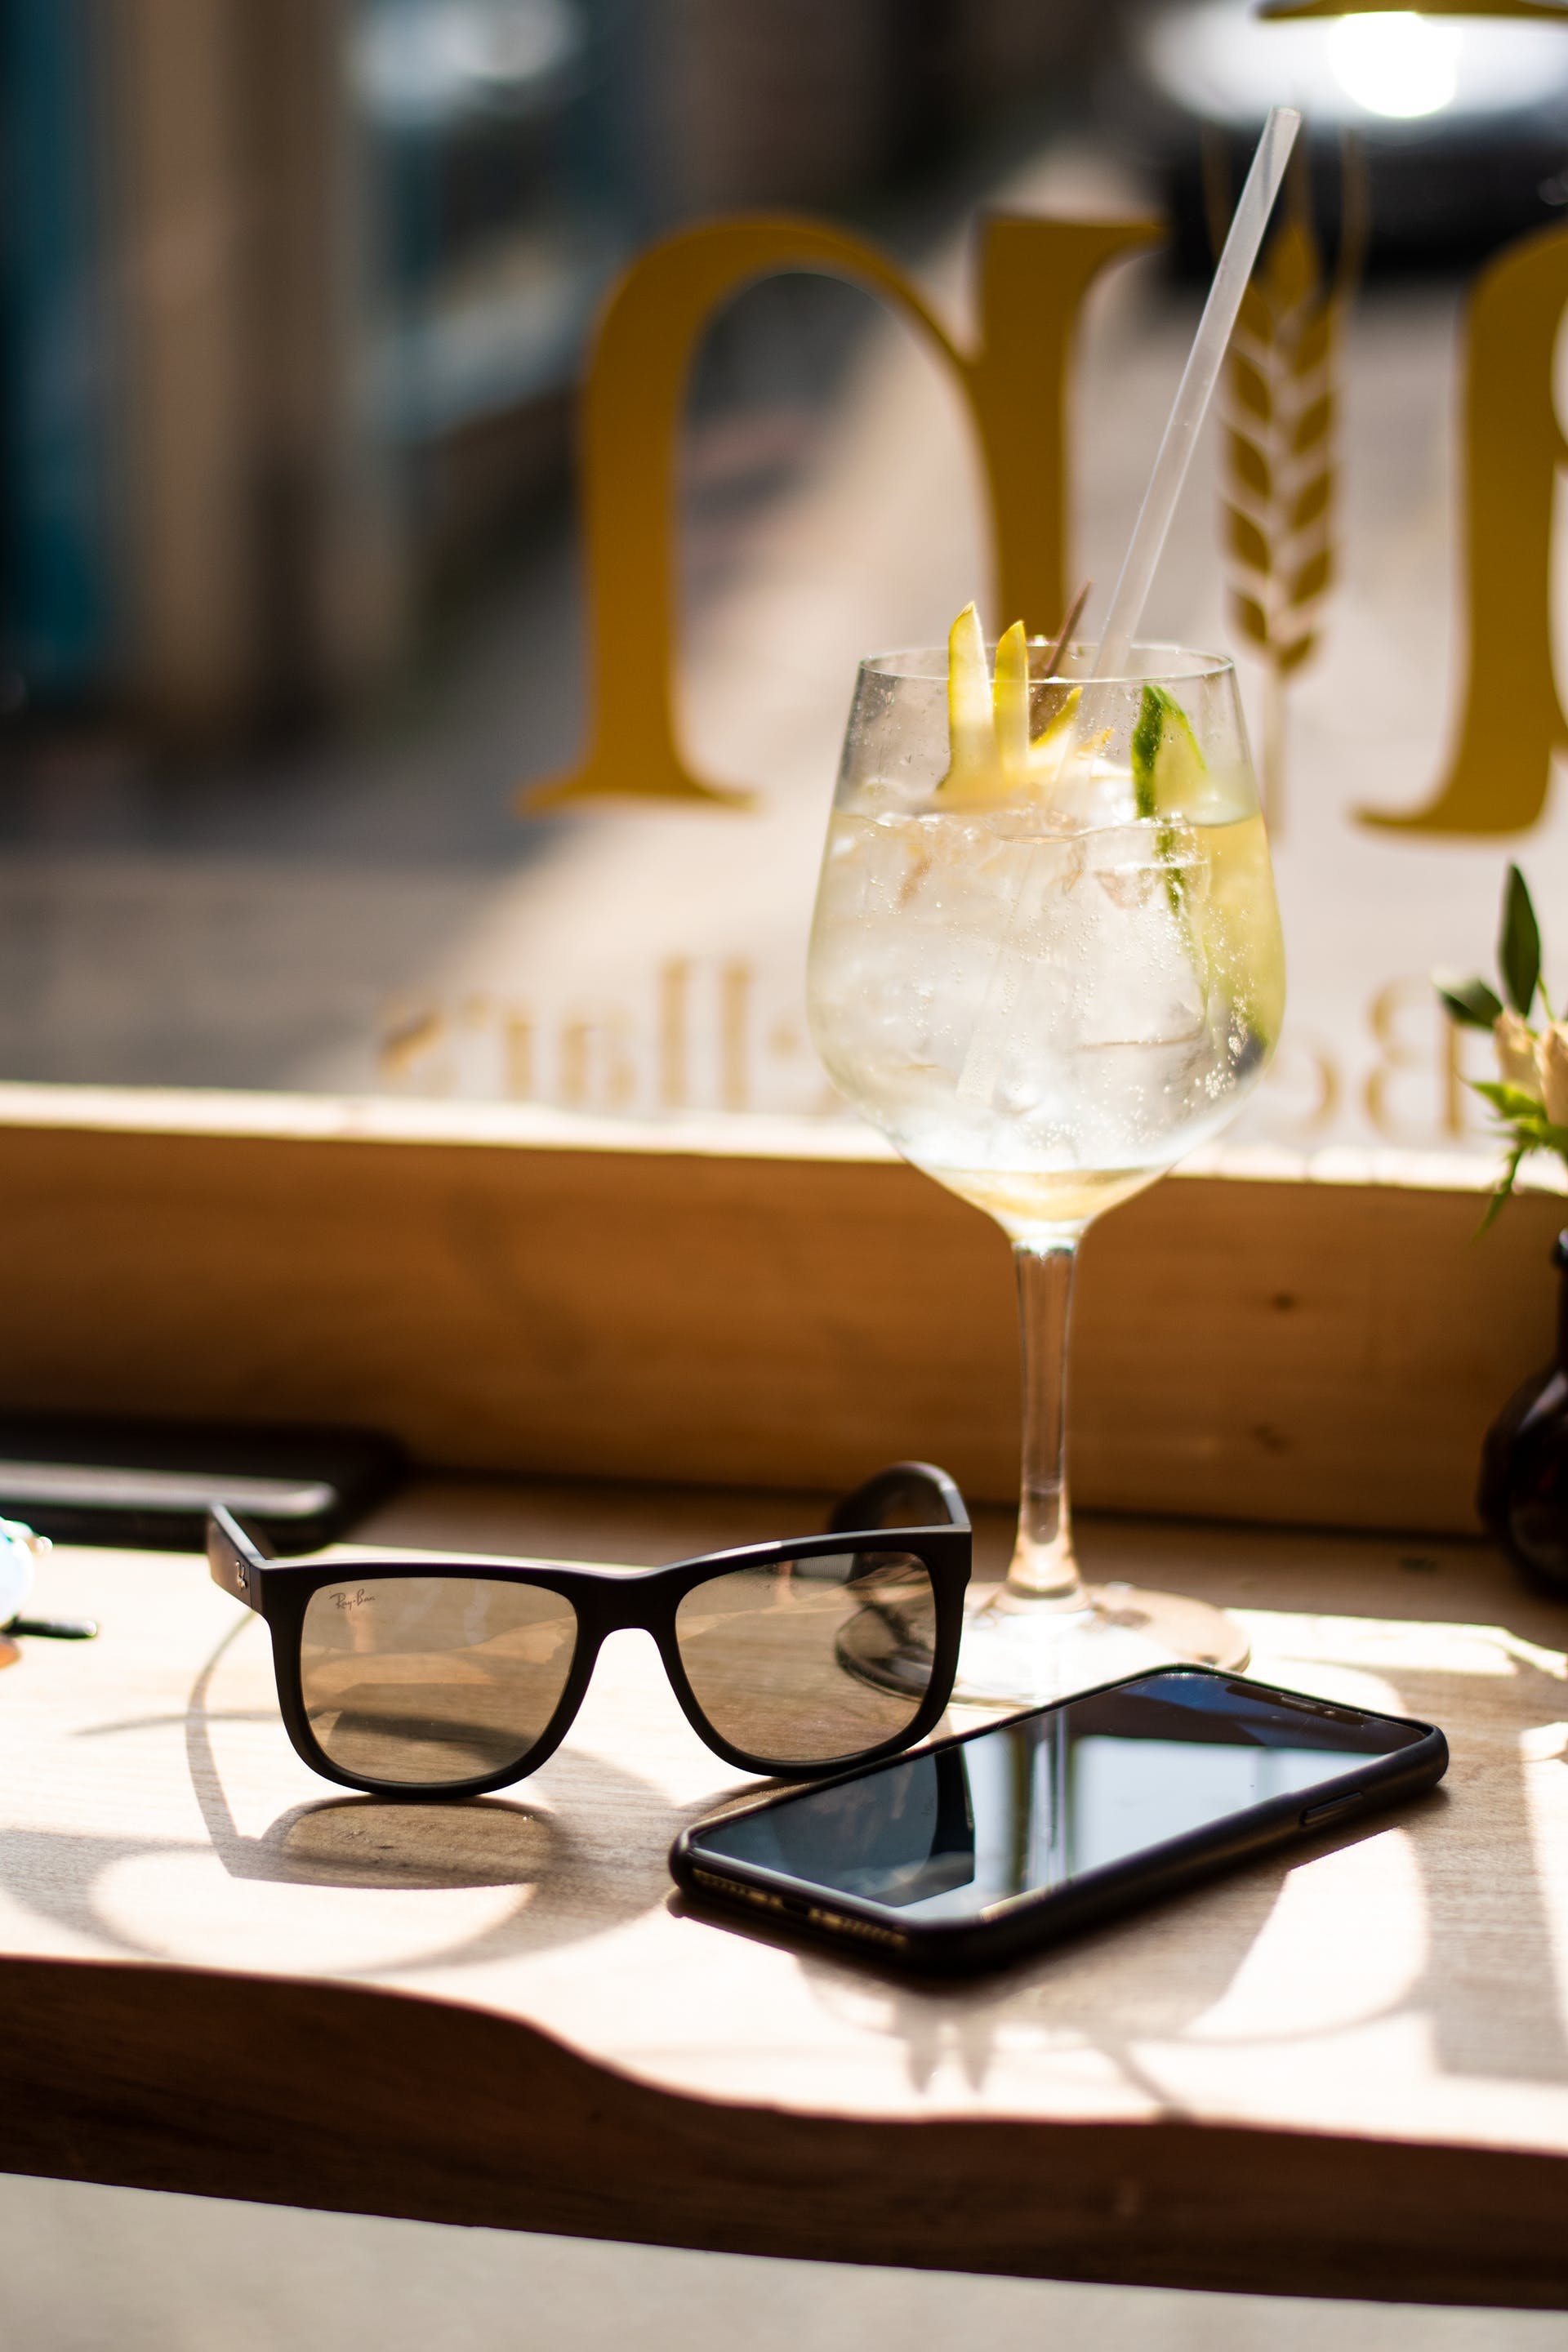 Wine Glass Beside Android Smartphone and Sunglasses